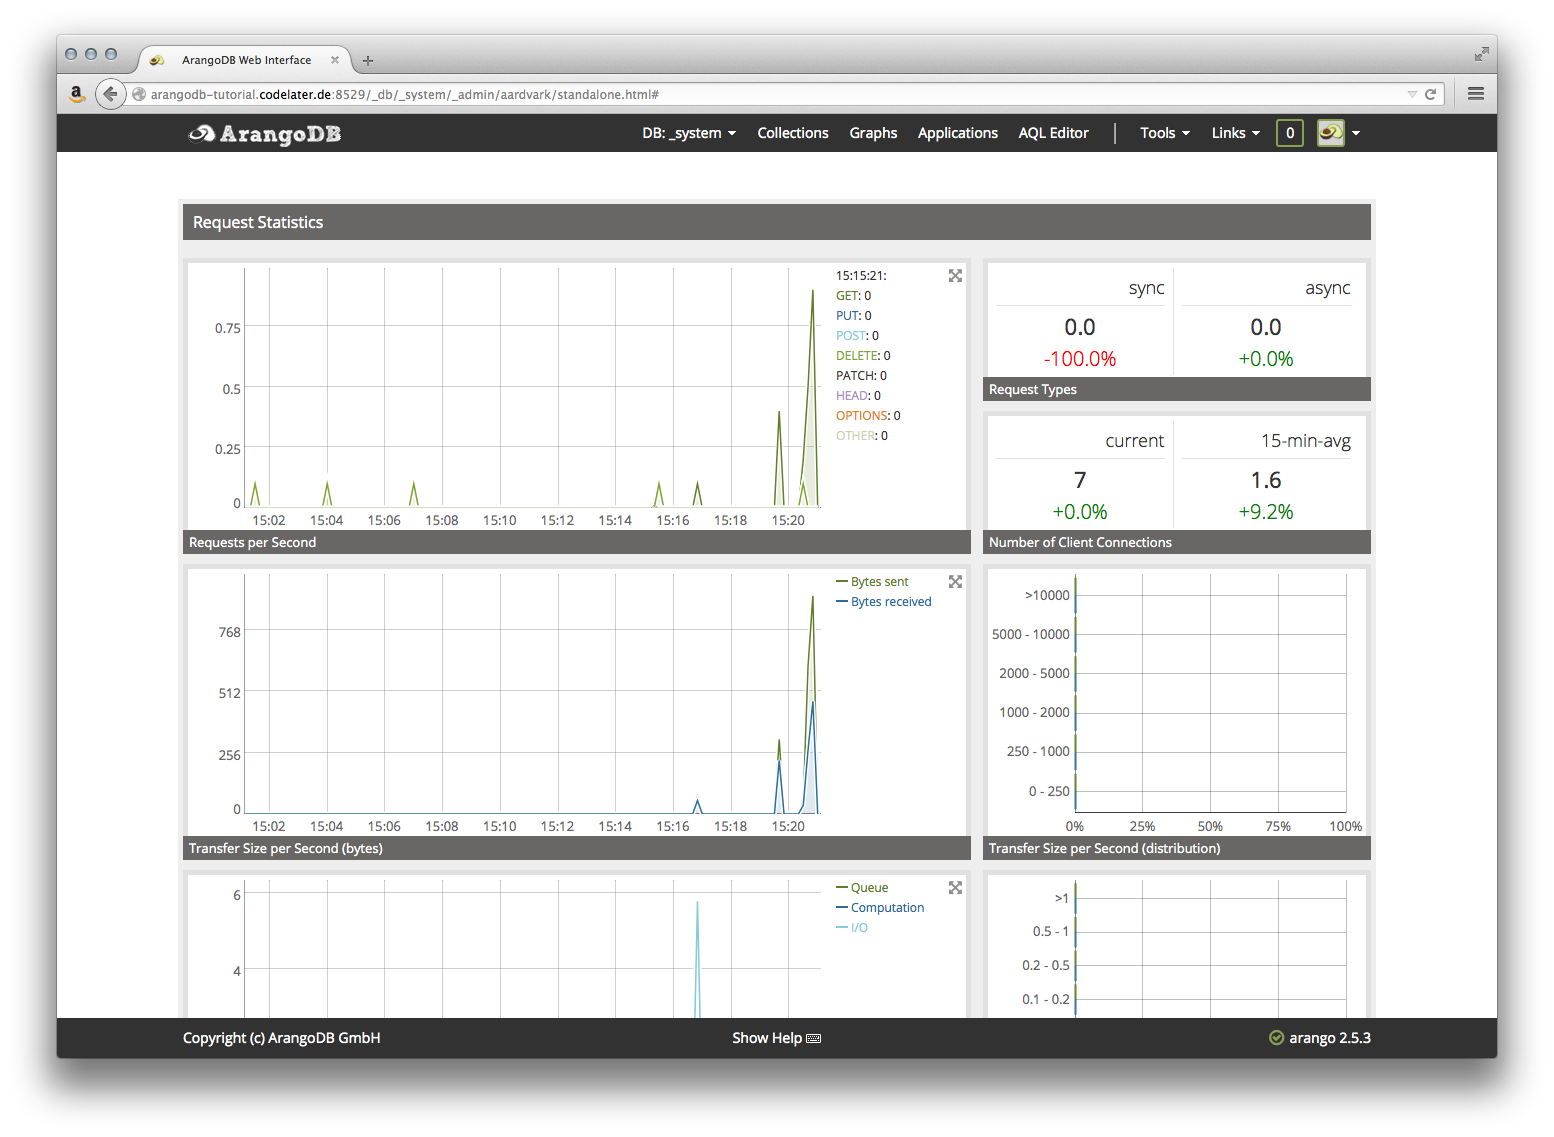 The ArangoDB web interface dashboard